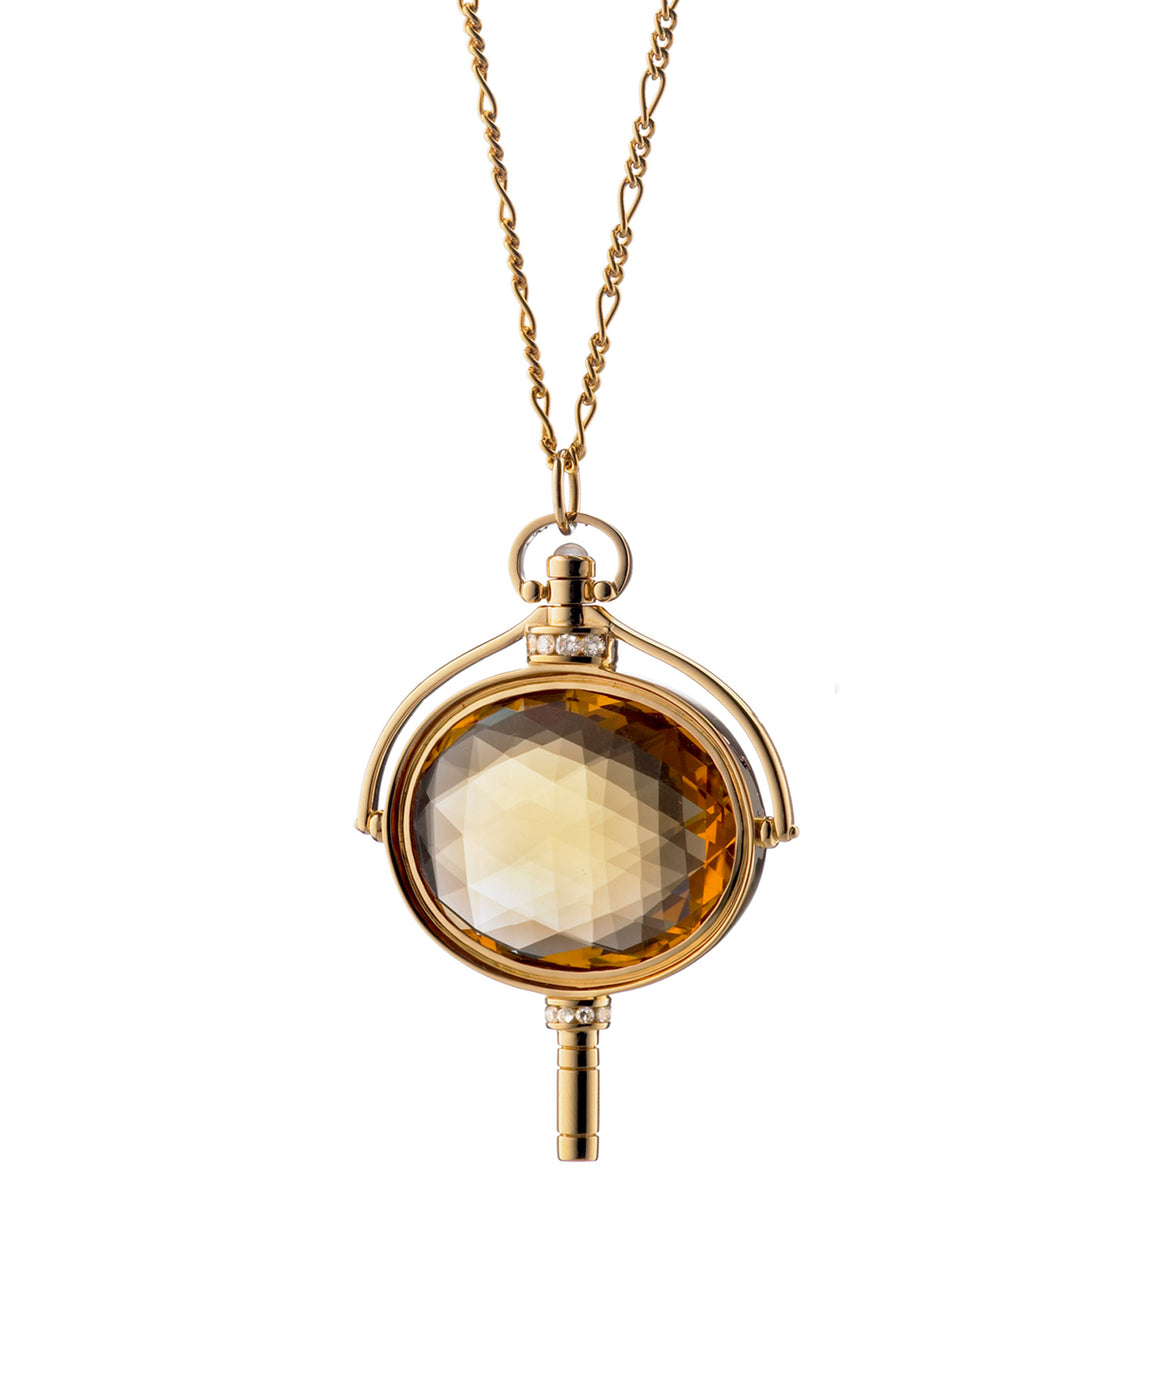 Honey citrine pocket watch key pendant